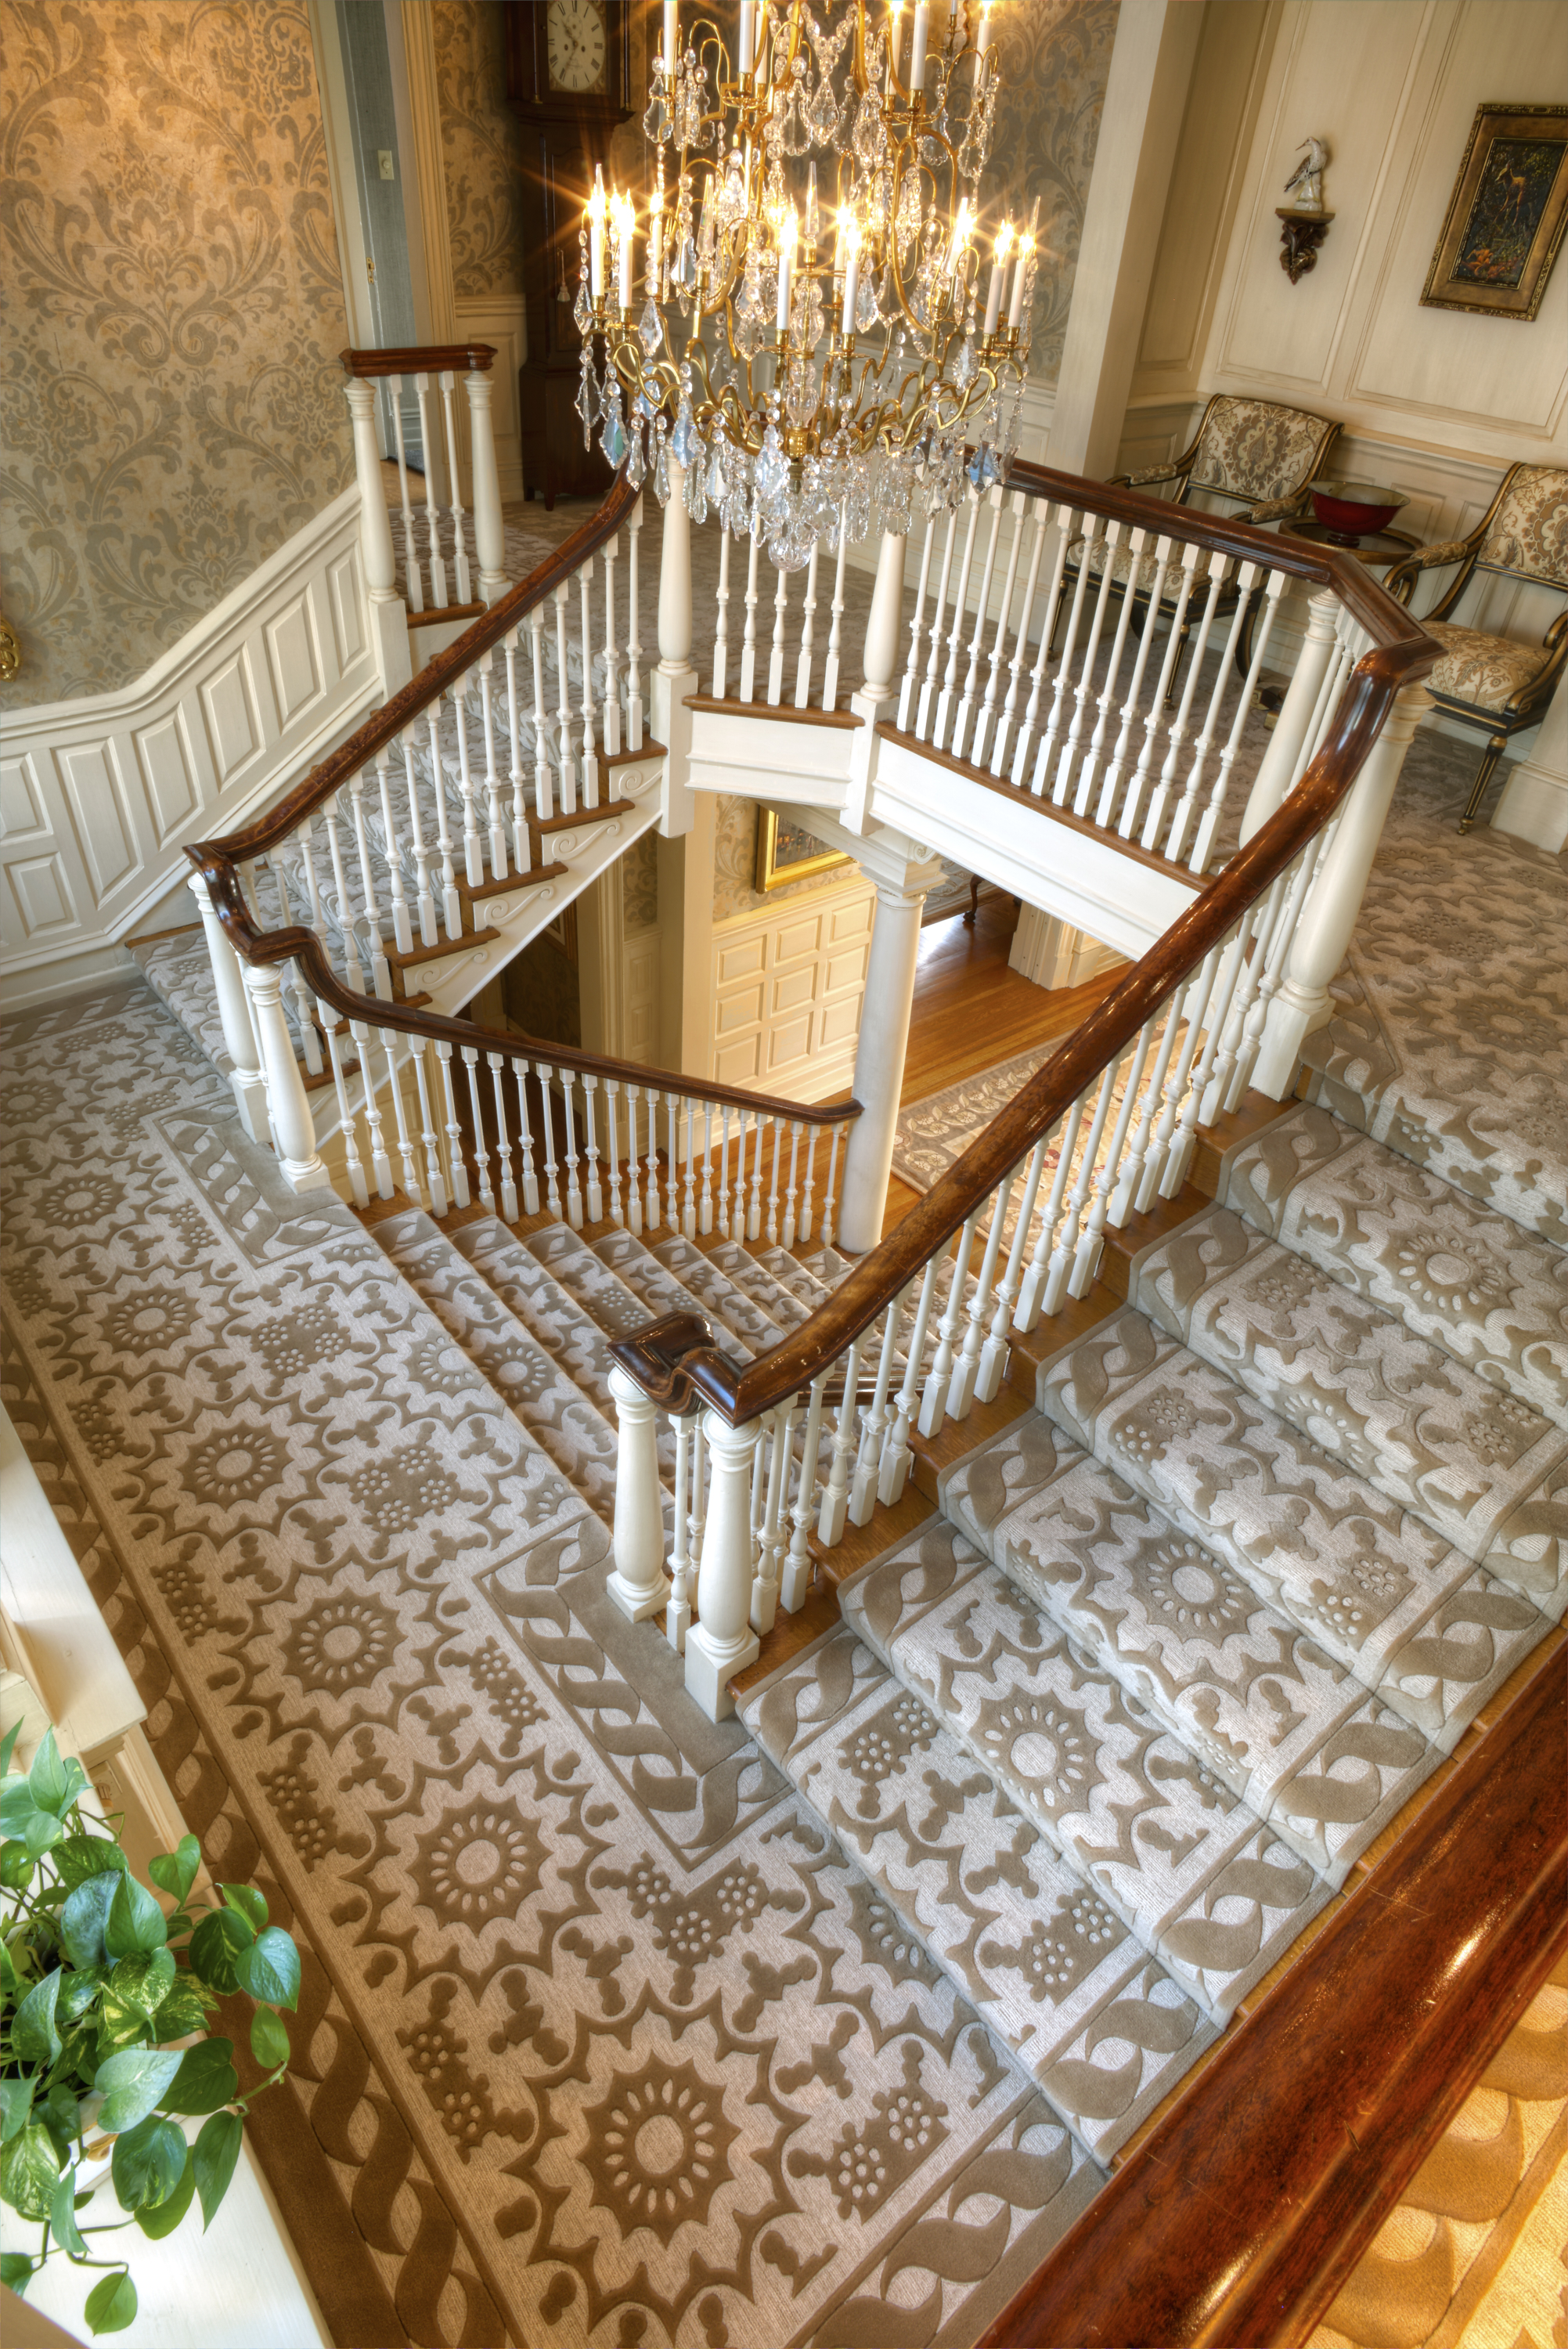 This is one of our recent Lang Carpet custom design and custom installation wool carpet jobs in ivory and gold